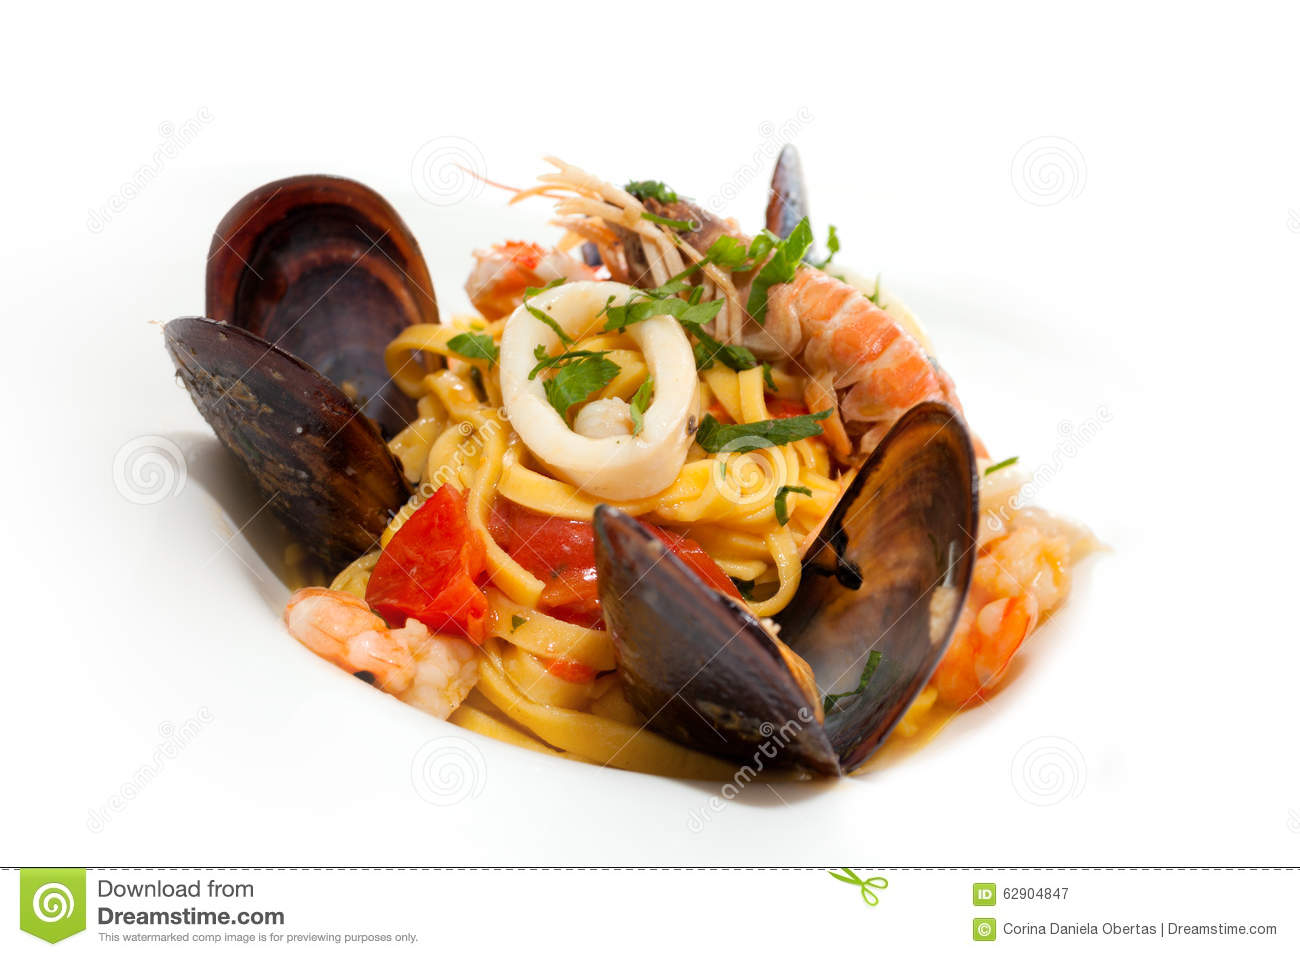 60 best images about Italian/seafood- dishes & plating on ...  |Authentic Italian Seafood Pasta Recipes